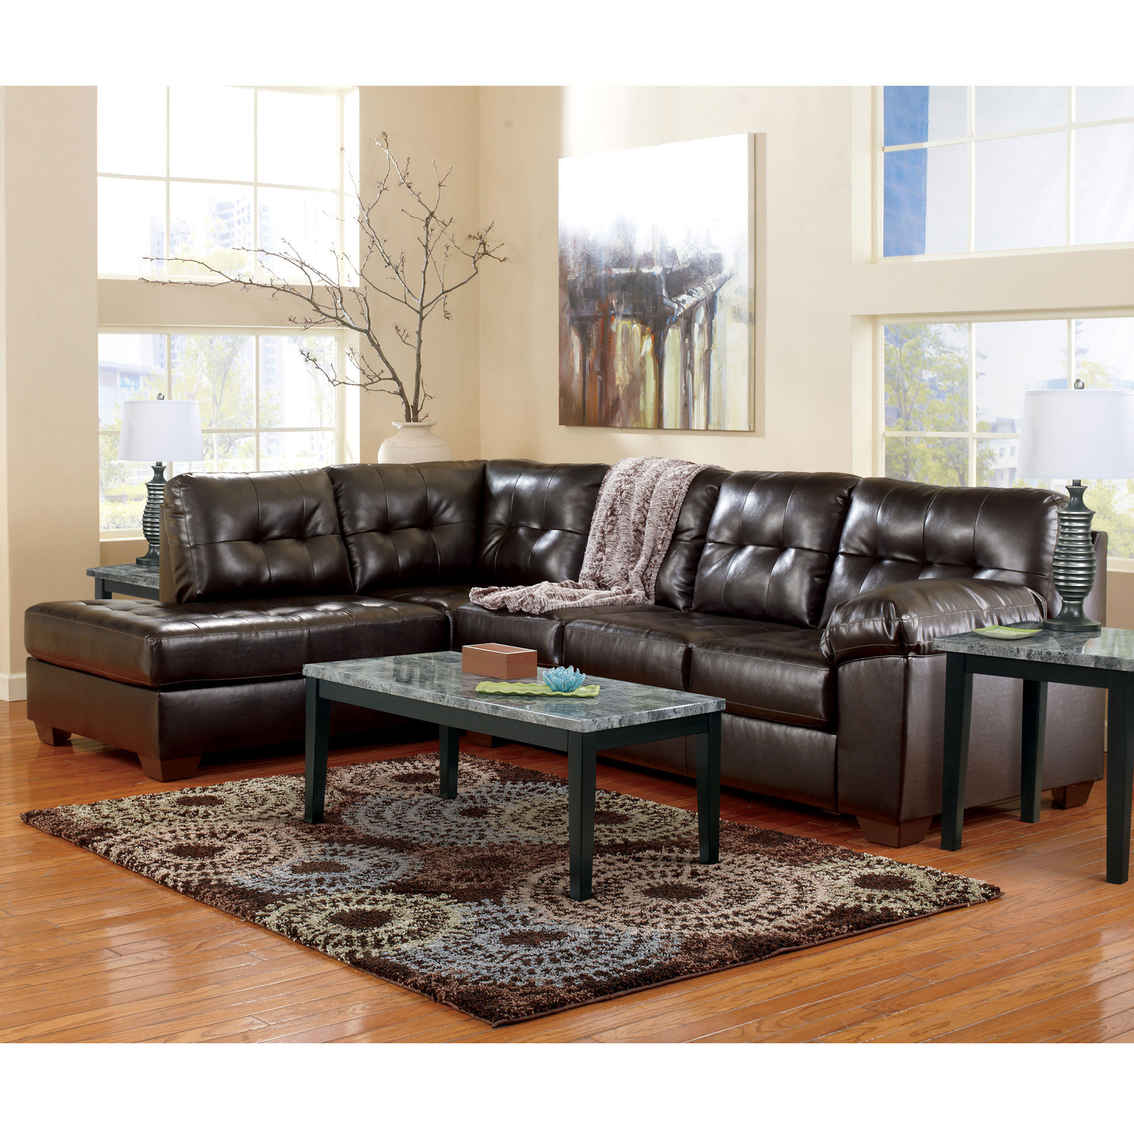 appliances furniture mattresses living room furniture sofas couches